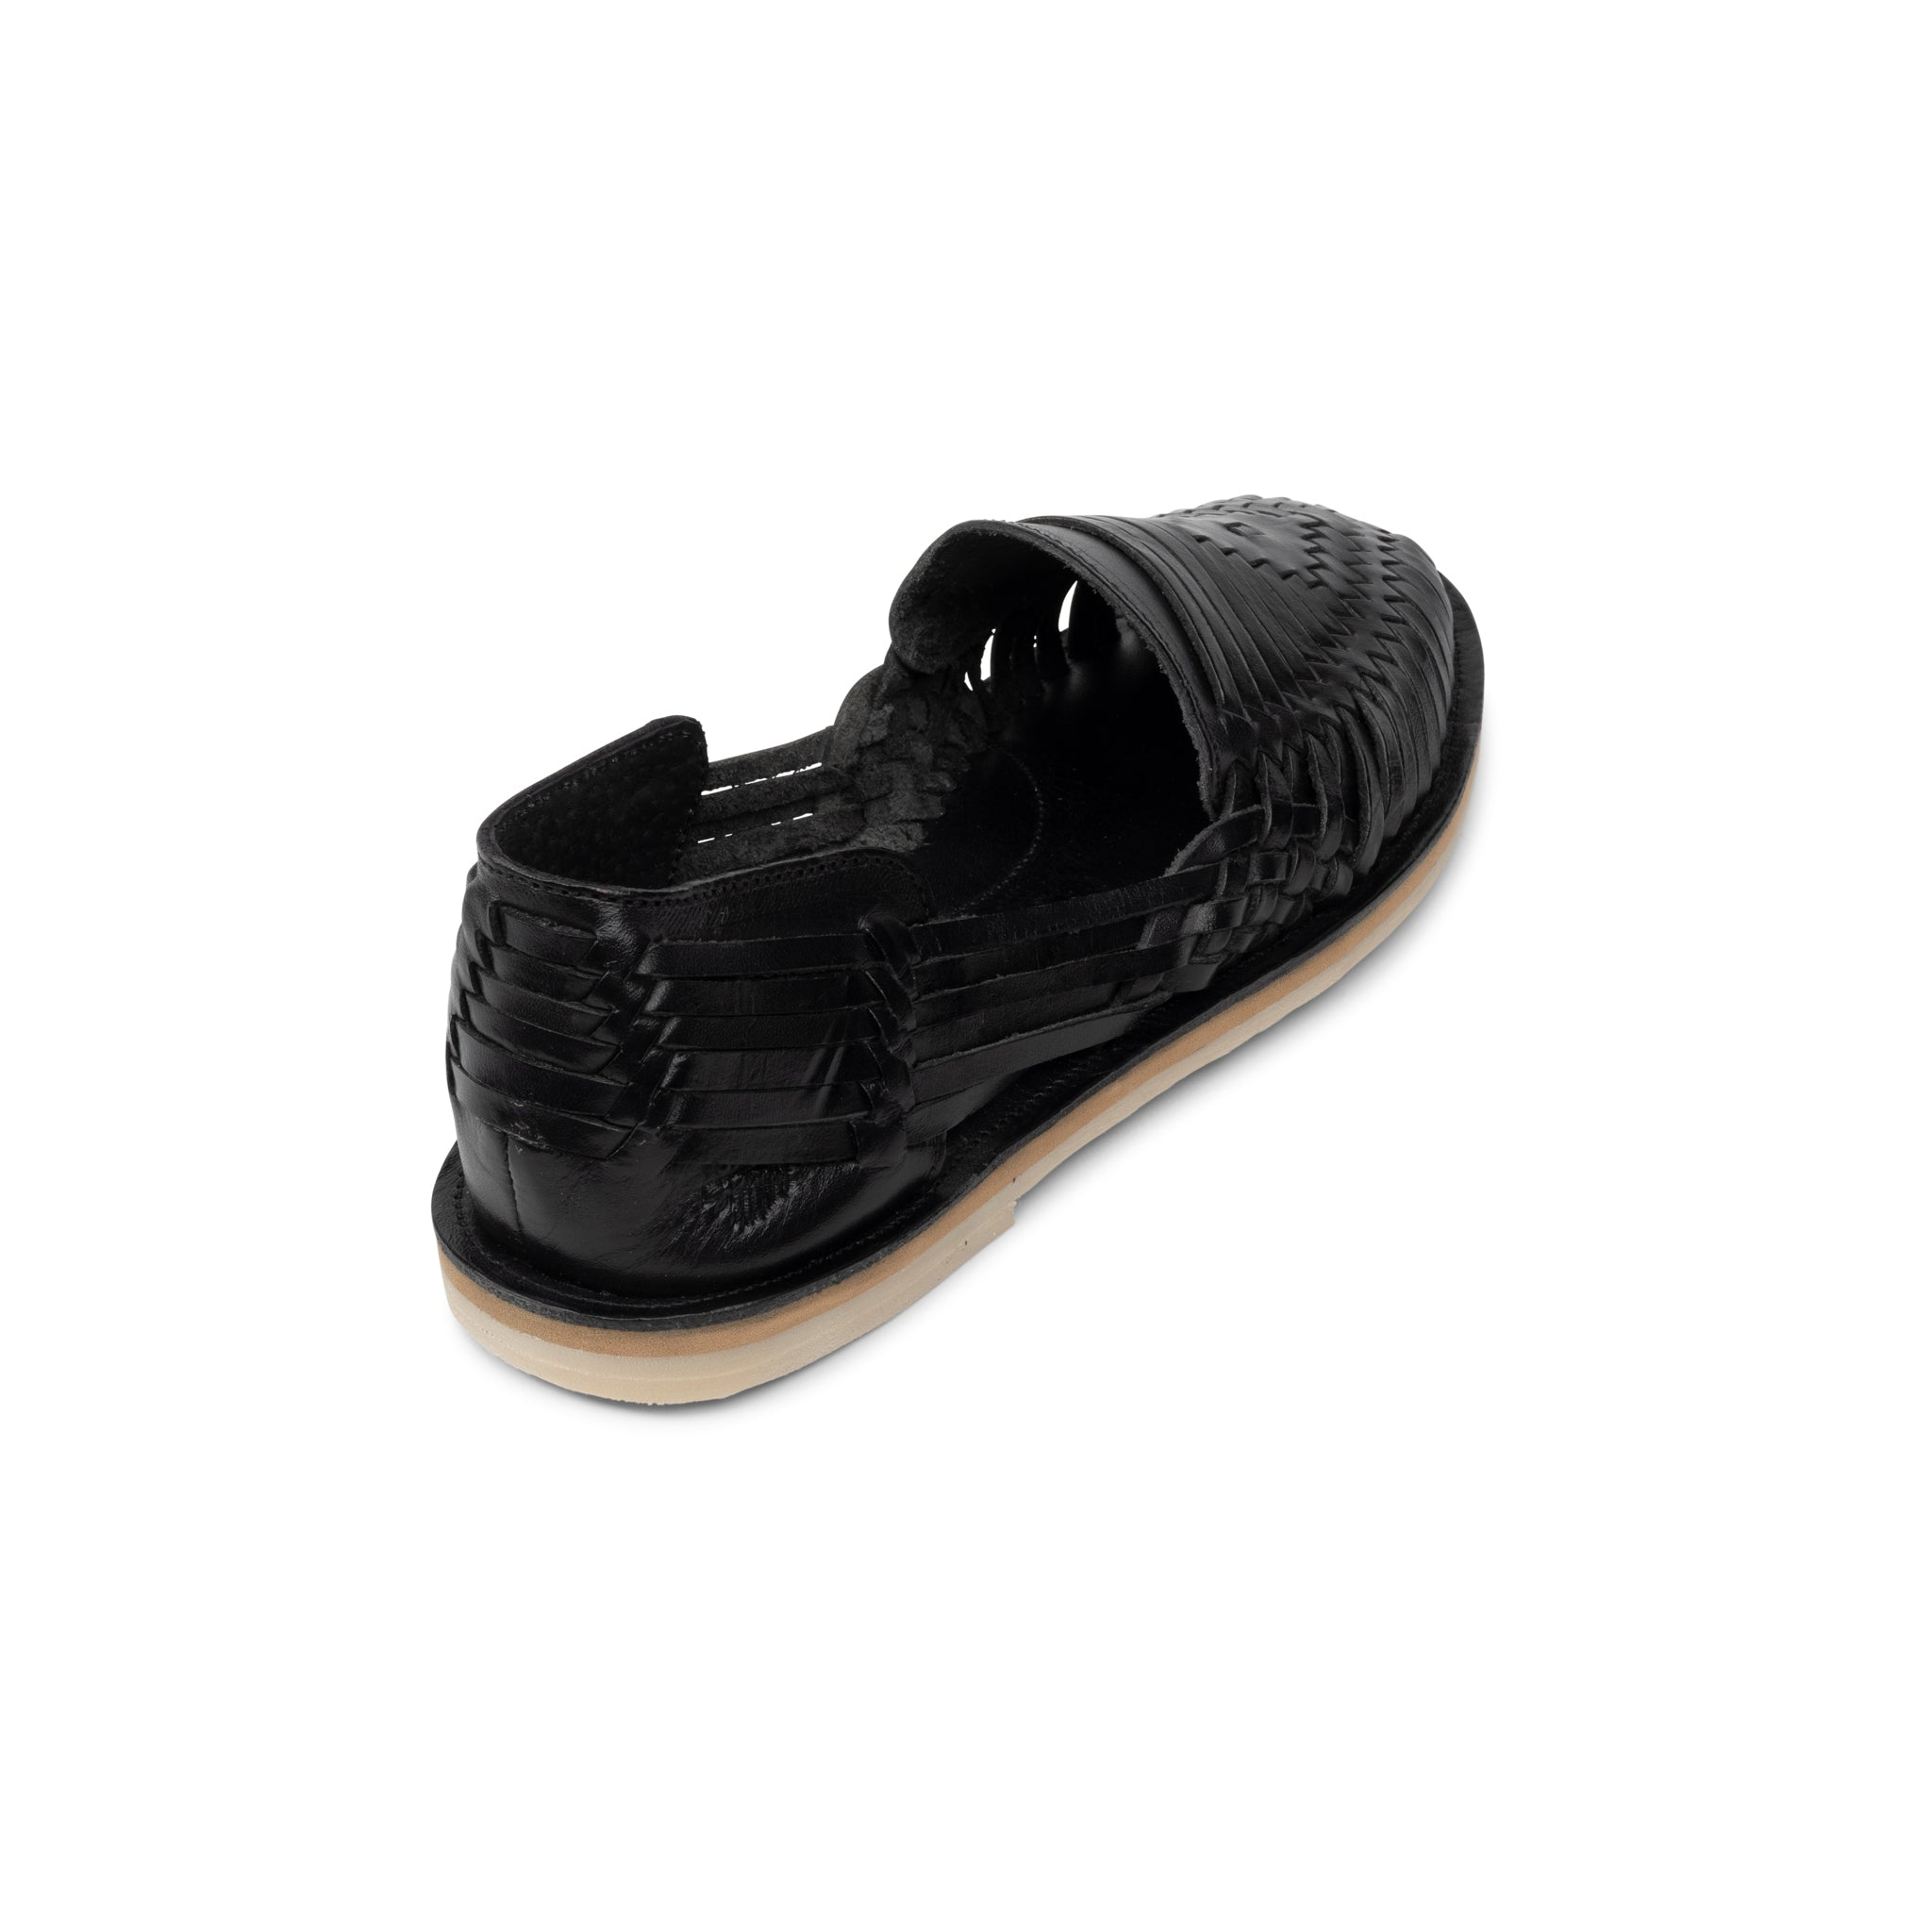 Moon Huarache Sandals – Espiritu Men - Espiritu Huaraches